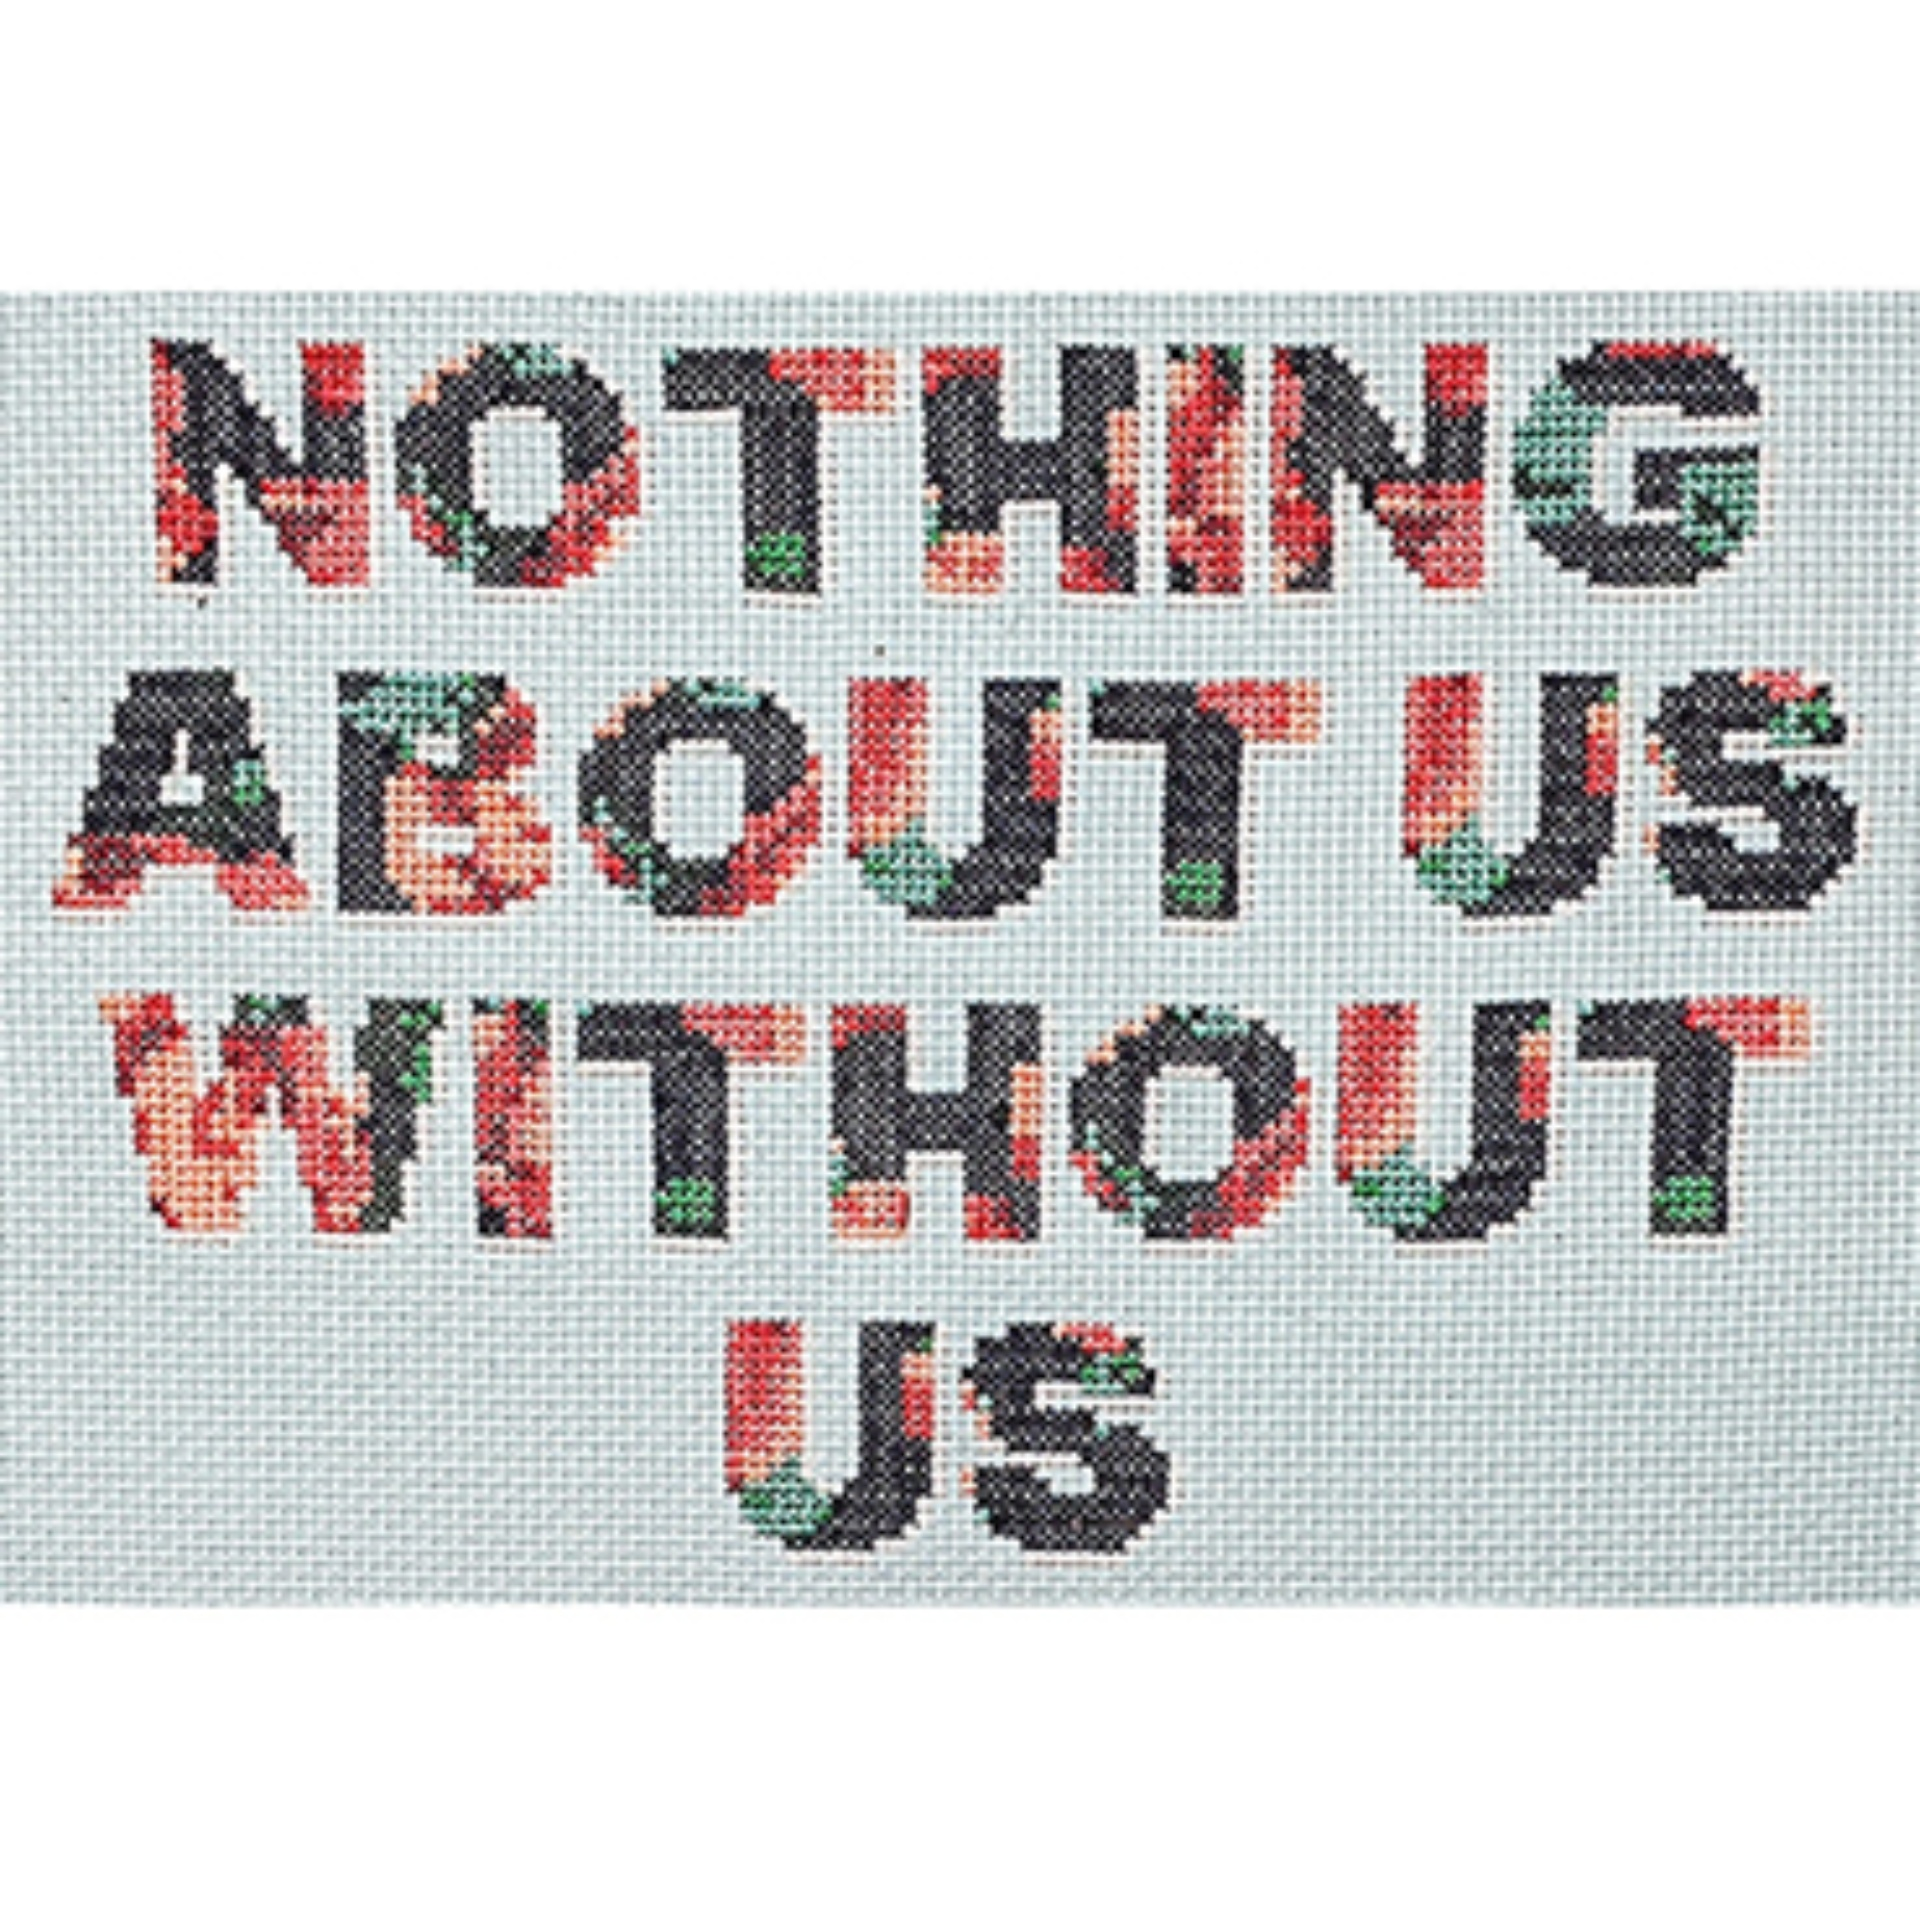 A cross-stitched panel. A white background with the words; Nothing About Us Without Us, stitched in bold capital lettering. The letters have a subtle floral pattern in navy blue, red and white vintage style.